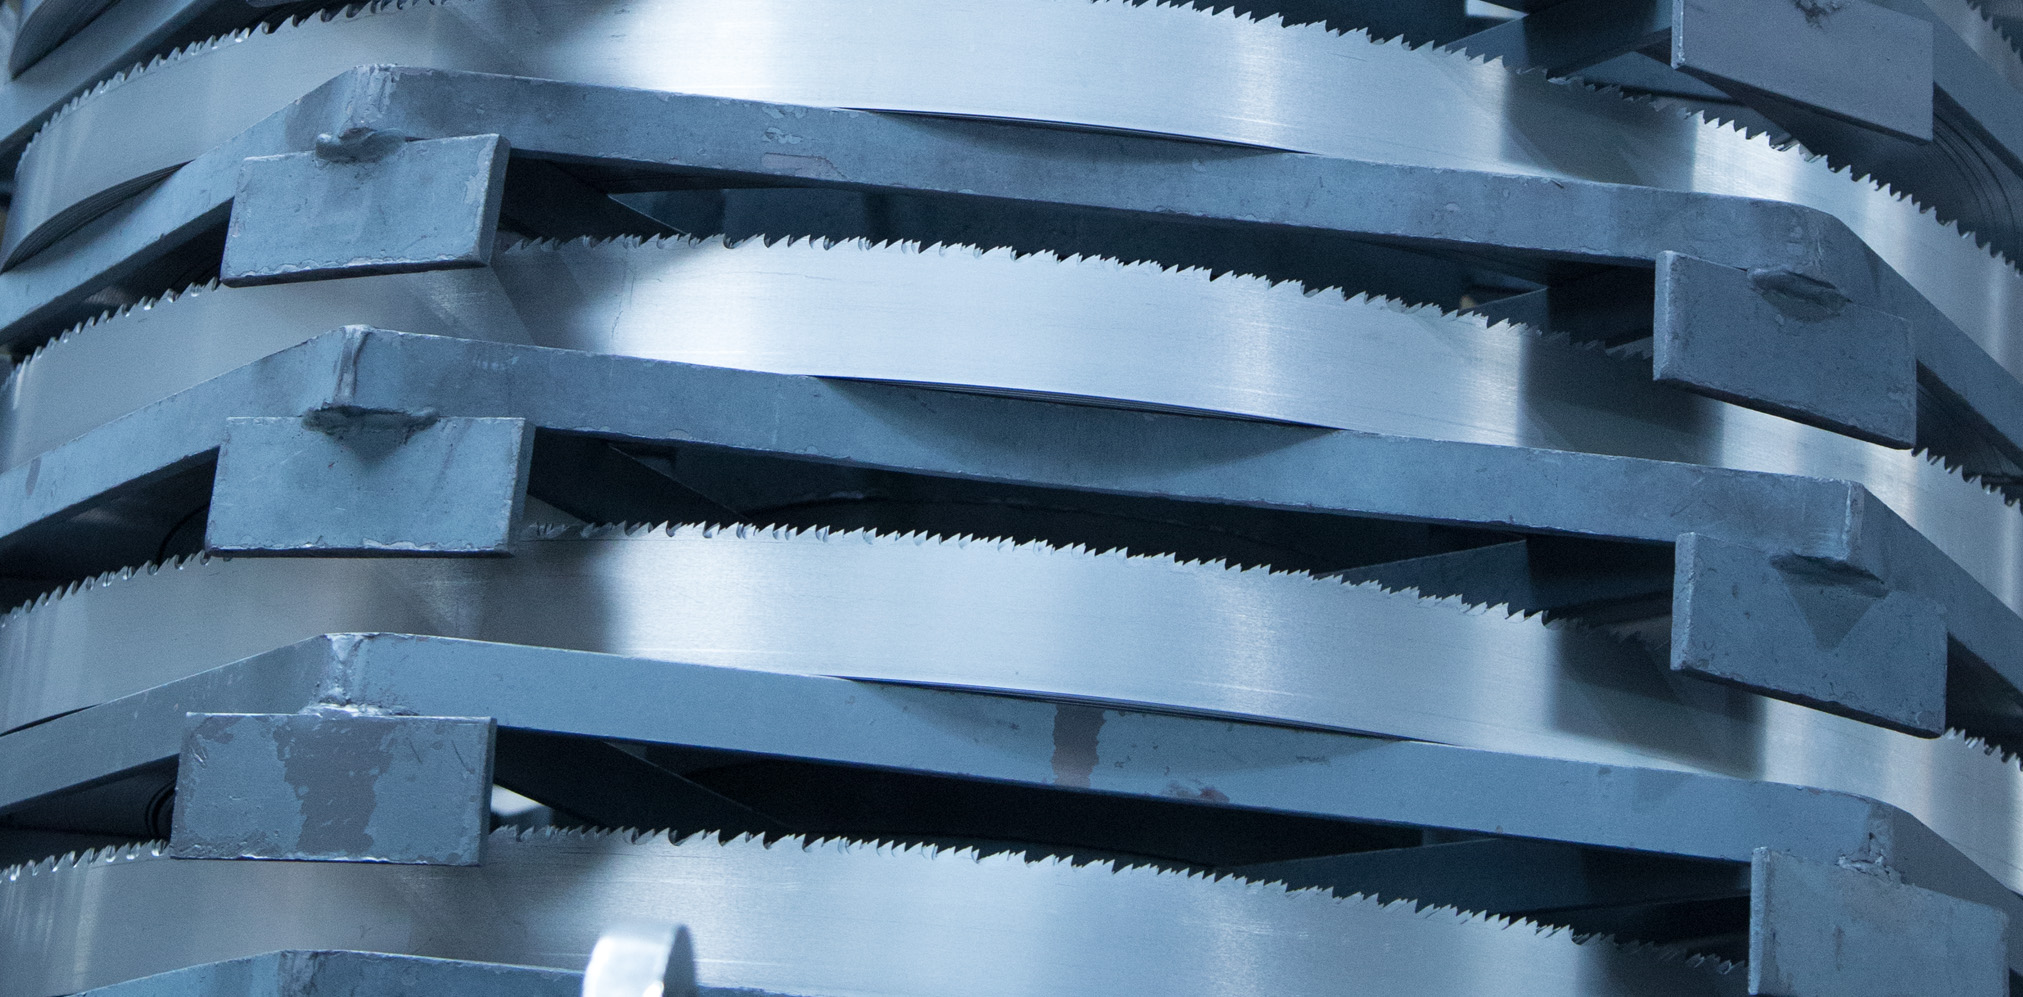 Band Saw Blades for Amada, Klaeger, Marvel, Meba, Mega, Mep